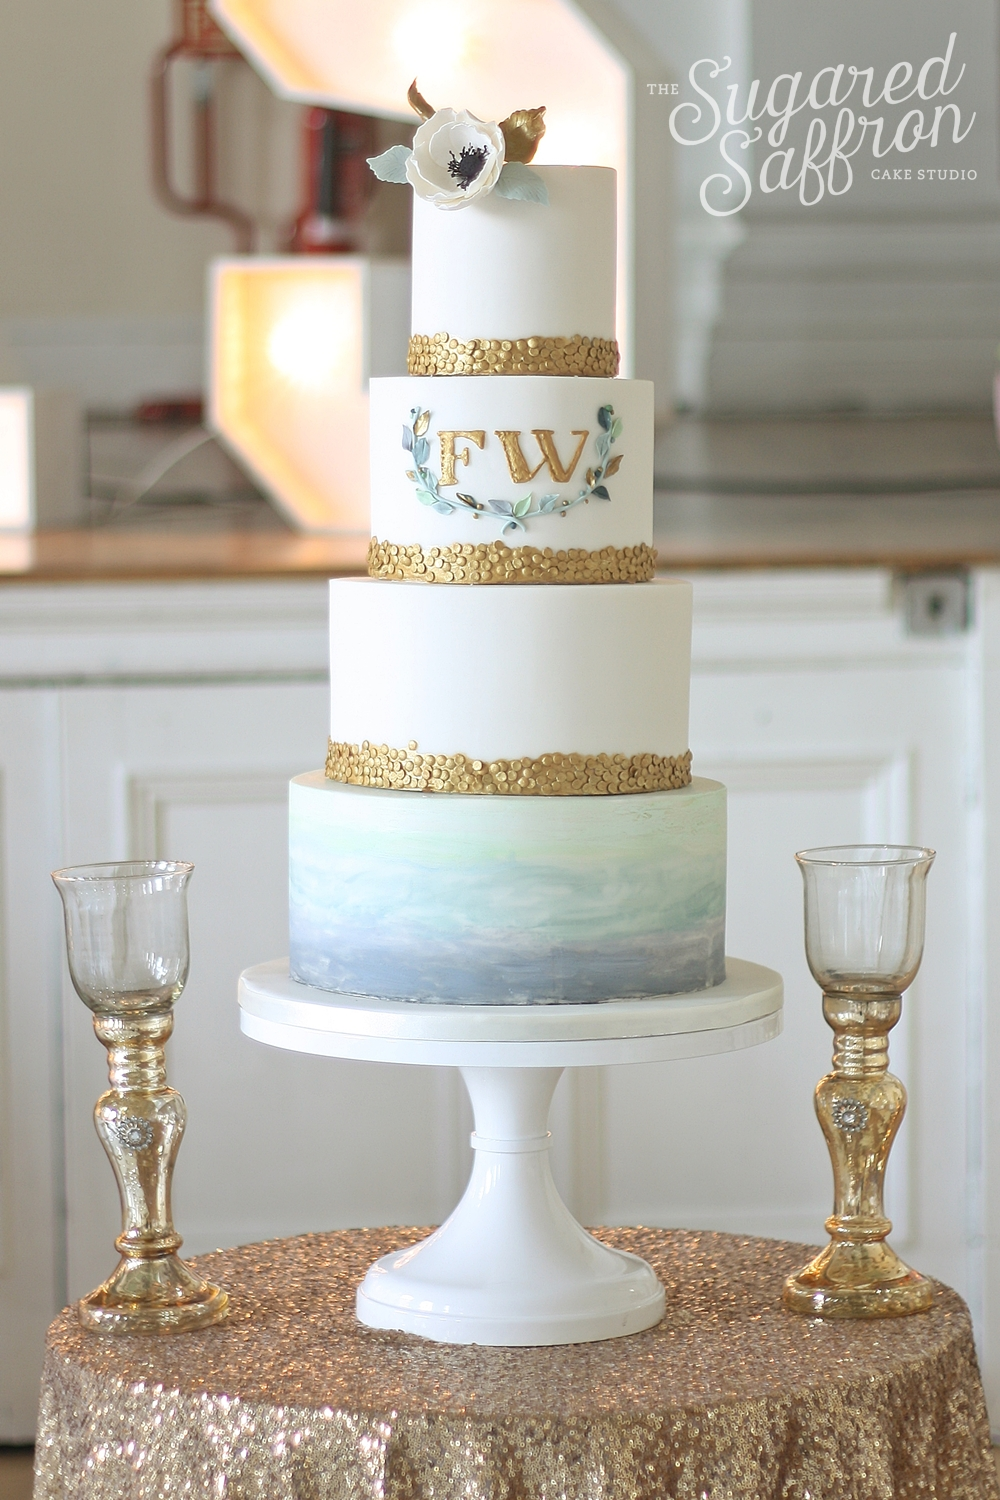 Watercolour and gold wedding cake in London by sugared saffron